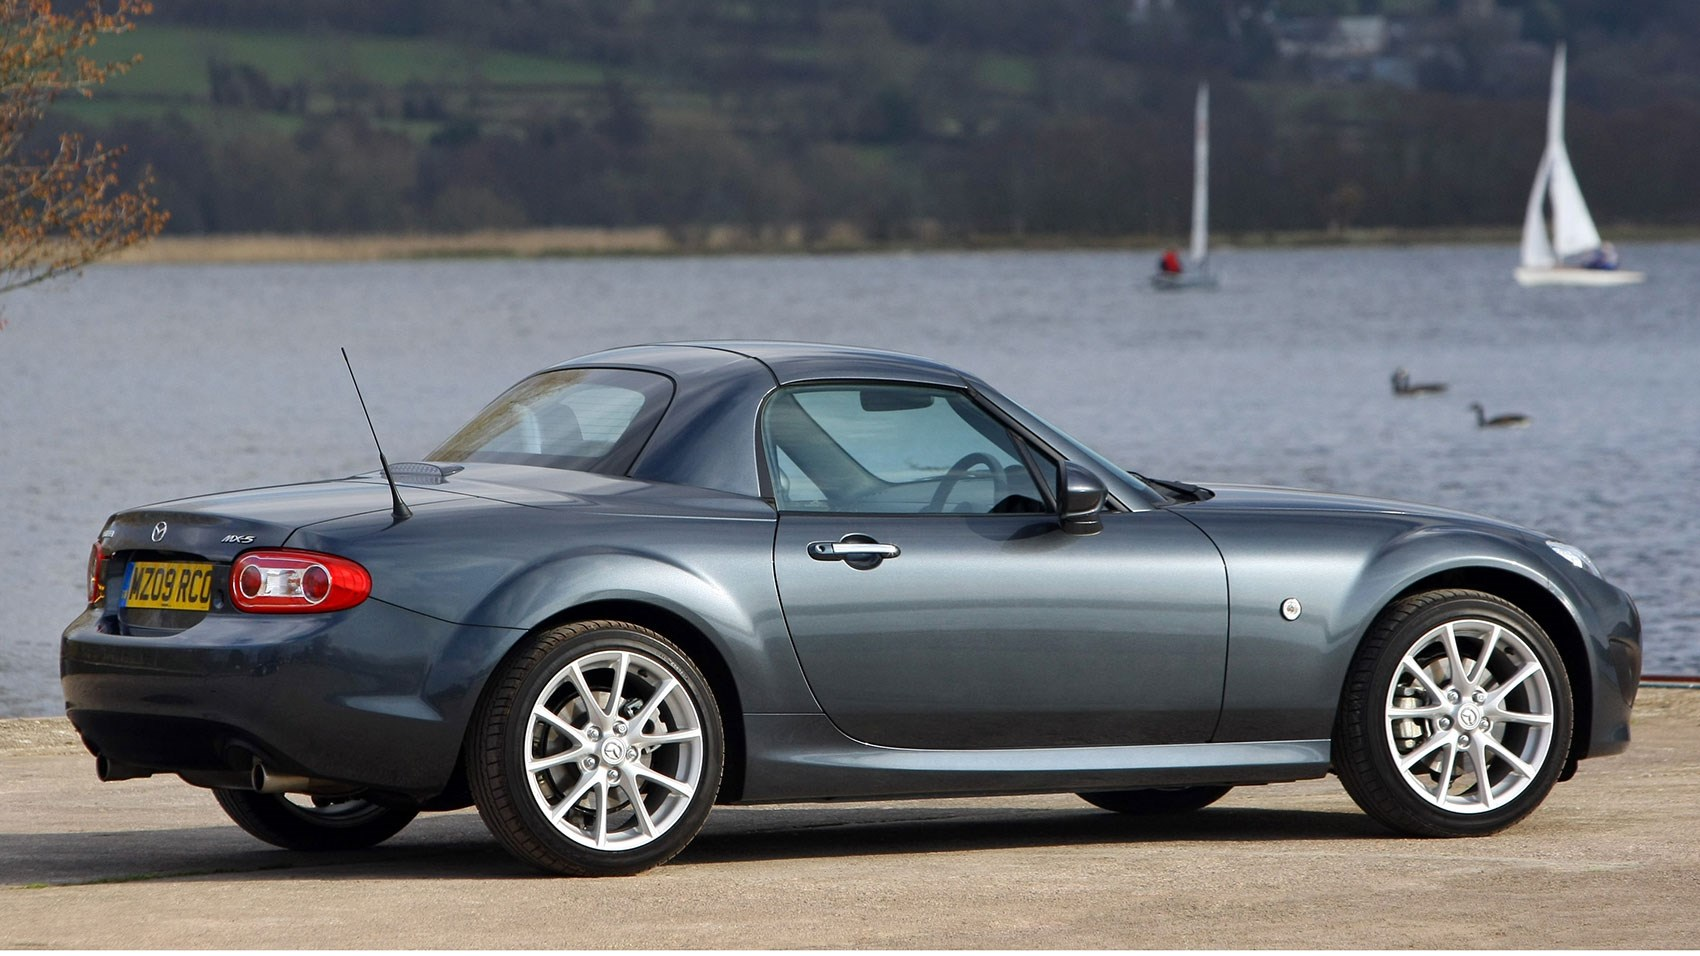 2005 roadster coupe gave the mx 5 a motorised folding hardtop